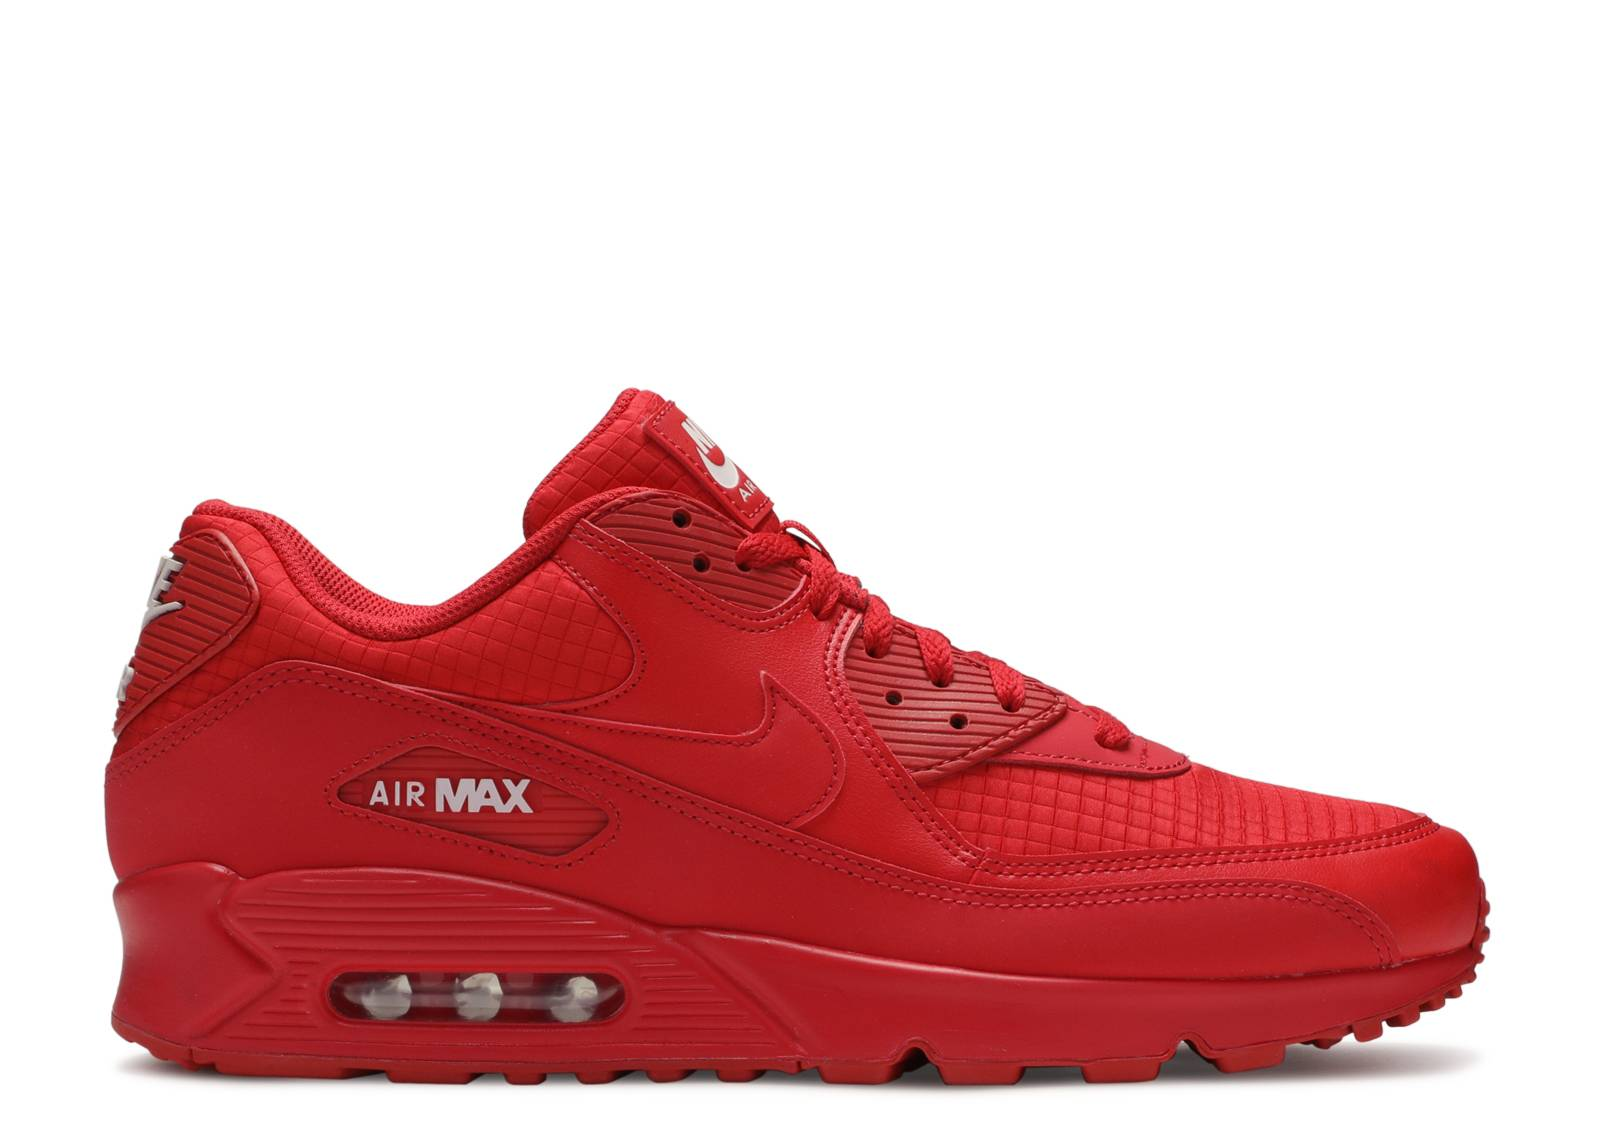 cebf62923e6f Nike Air Max 90 Essential - Nike - aj1285 602 - university red white ...